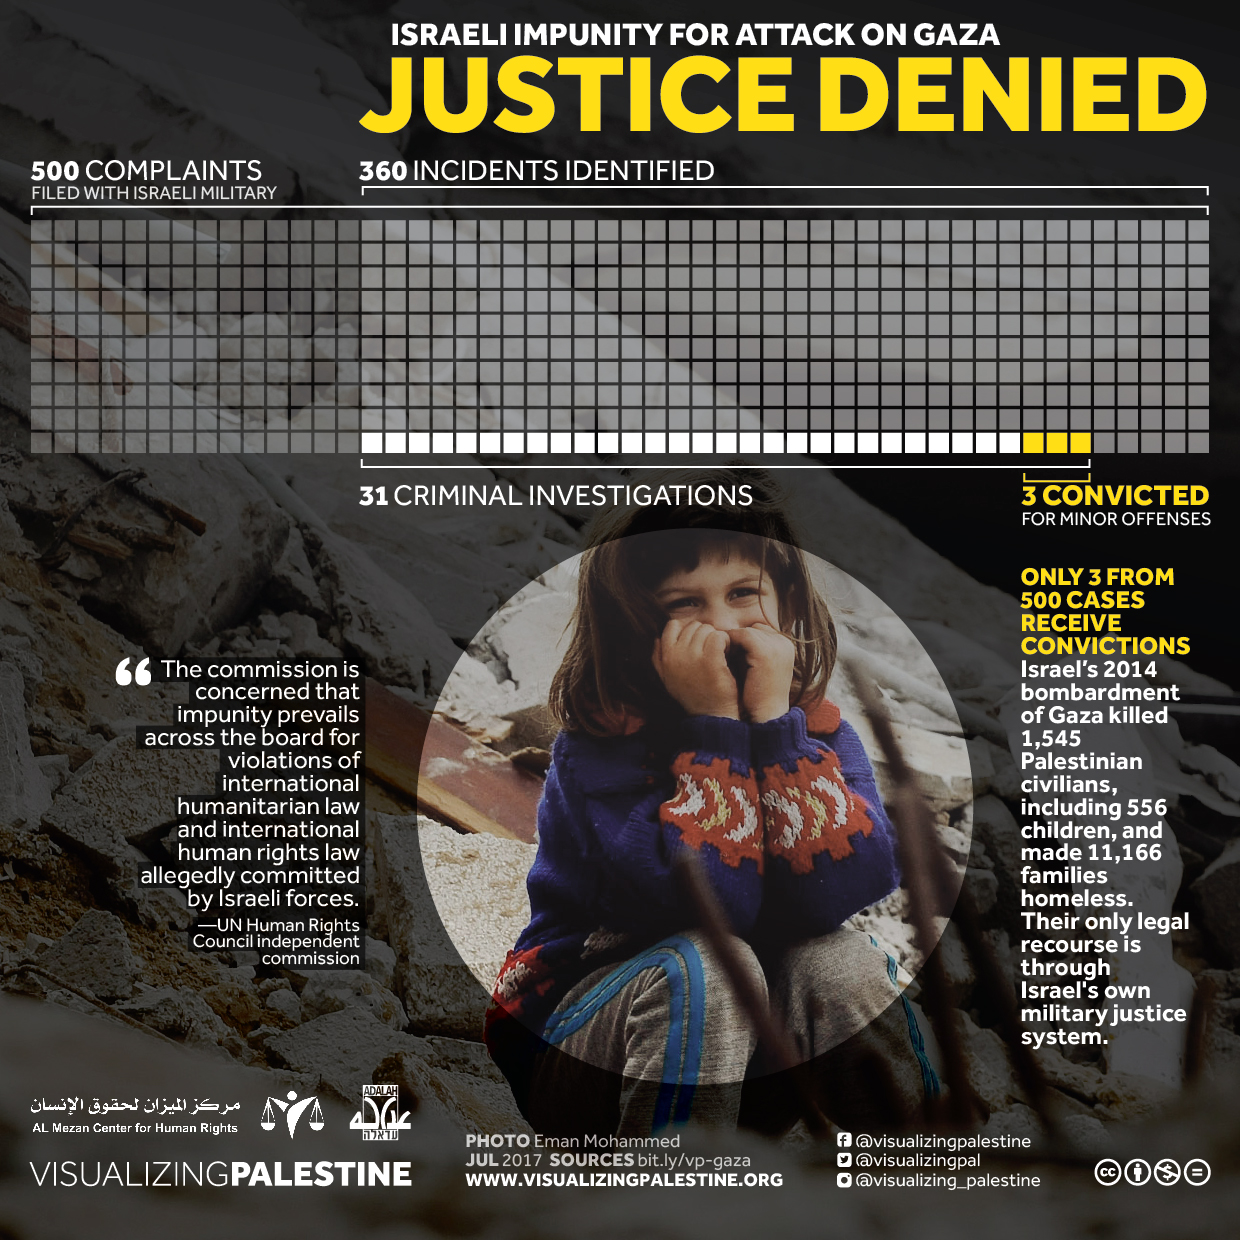 Justice Denied: Israeli Impunity for Attack on Gaza